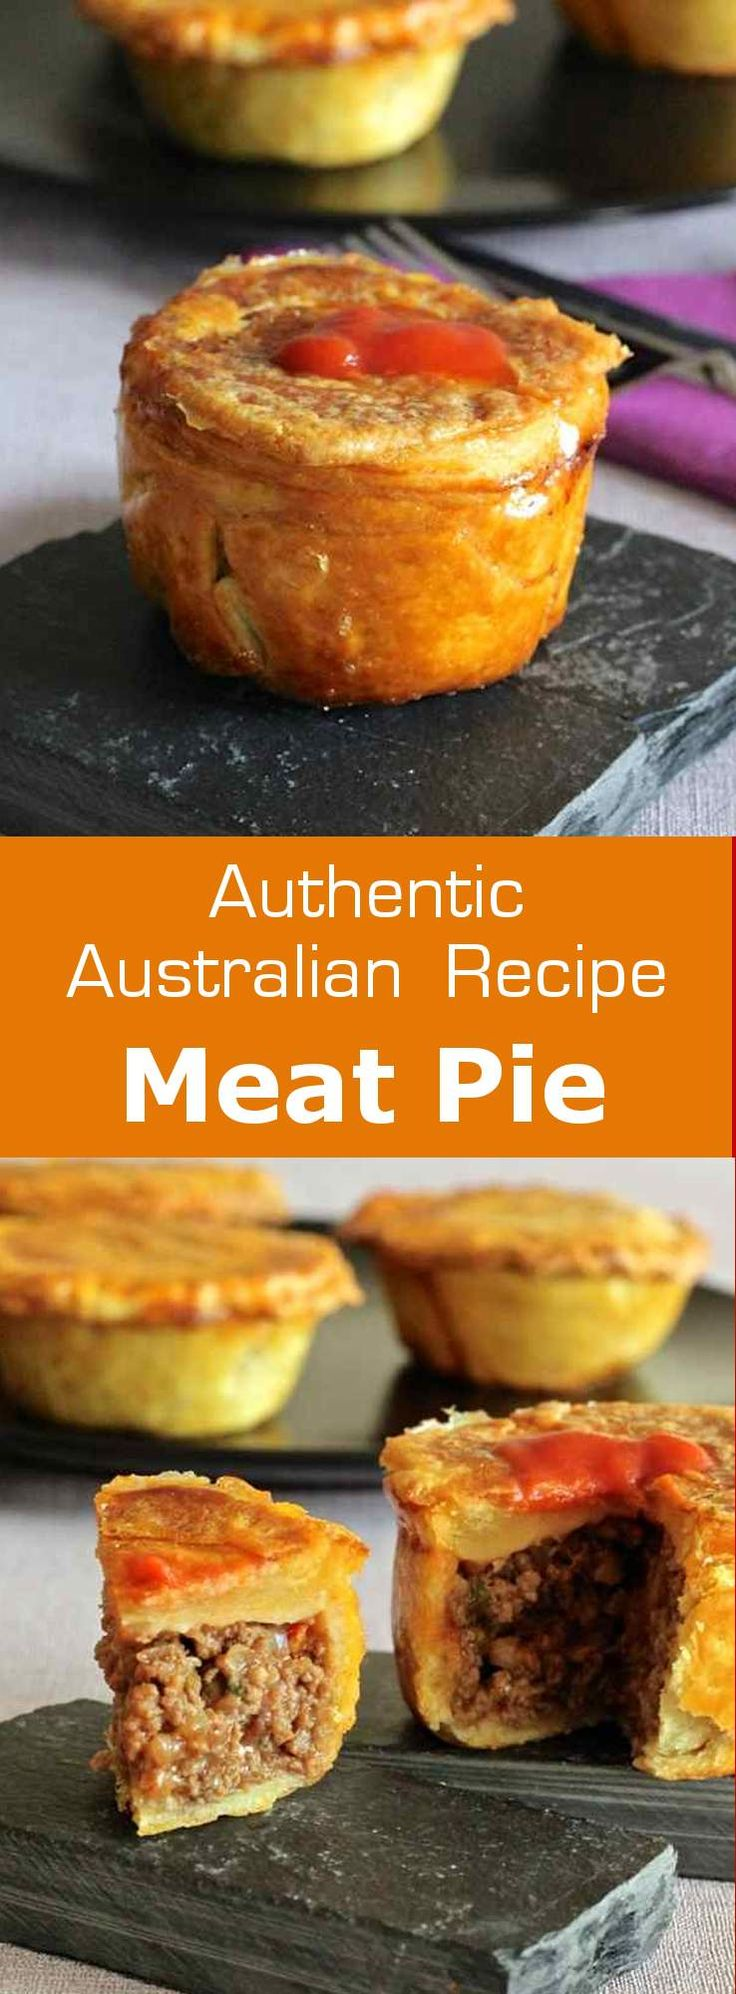 Meat pie, one of the most emblematic dishes of Australia, is a pie stuffed with beef traditionally served in individual portions. #australia #196flavors